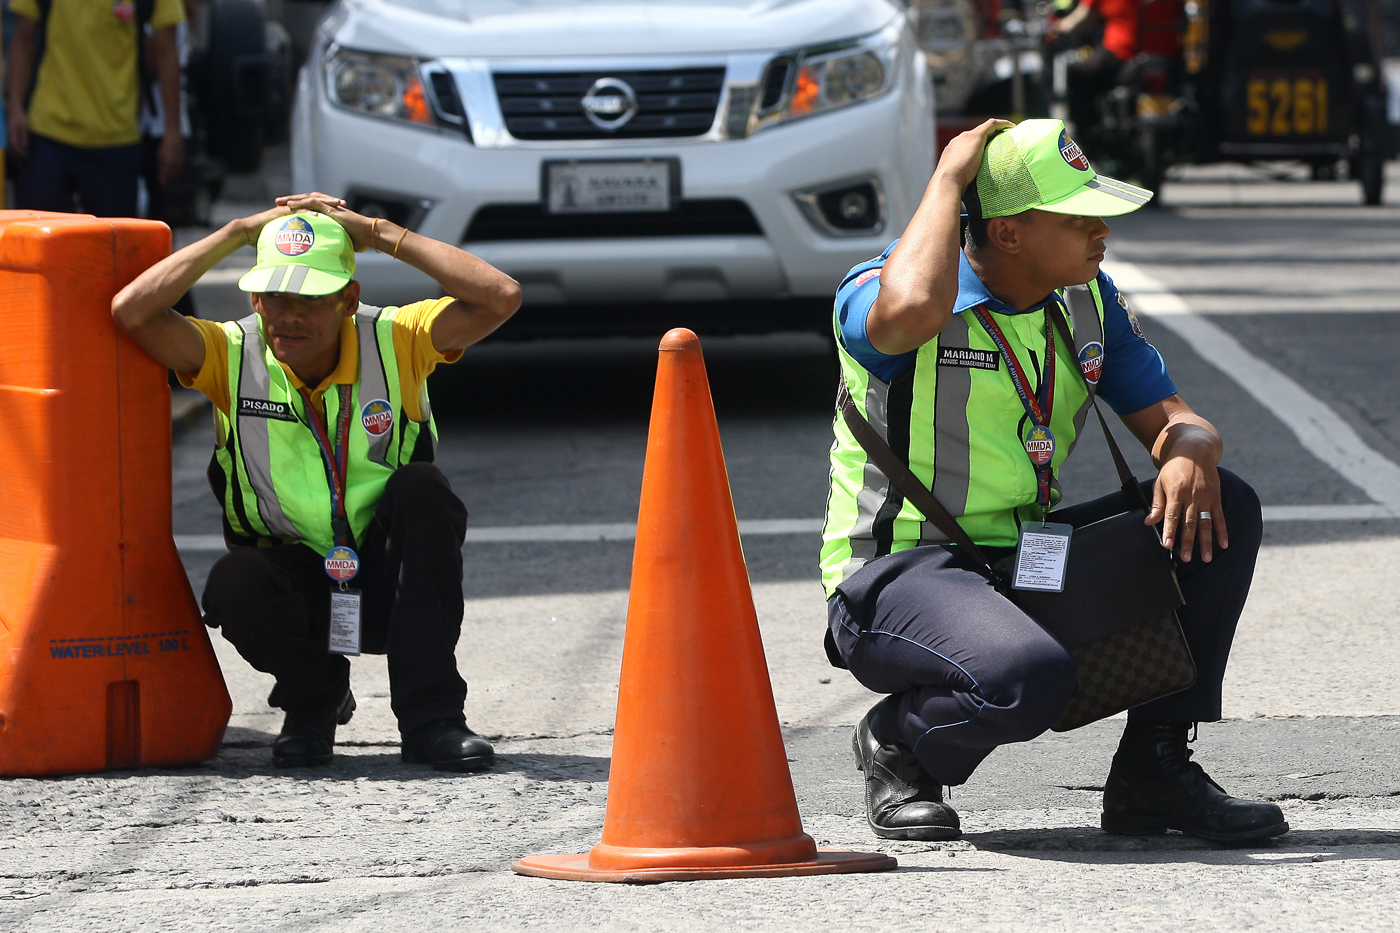 TRAFFIC ENFORCERS. MMDA traffic enforcers participate in the earthquake drill in Makati City on June 29, 2017. Photo by Ben Nabong/Rappler